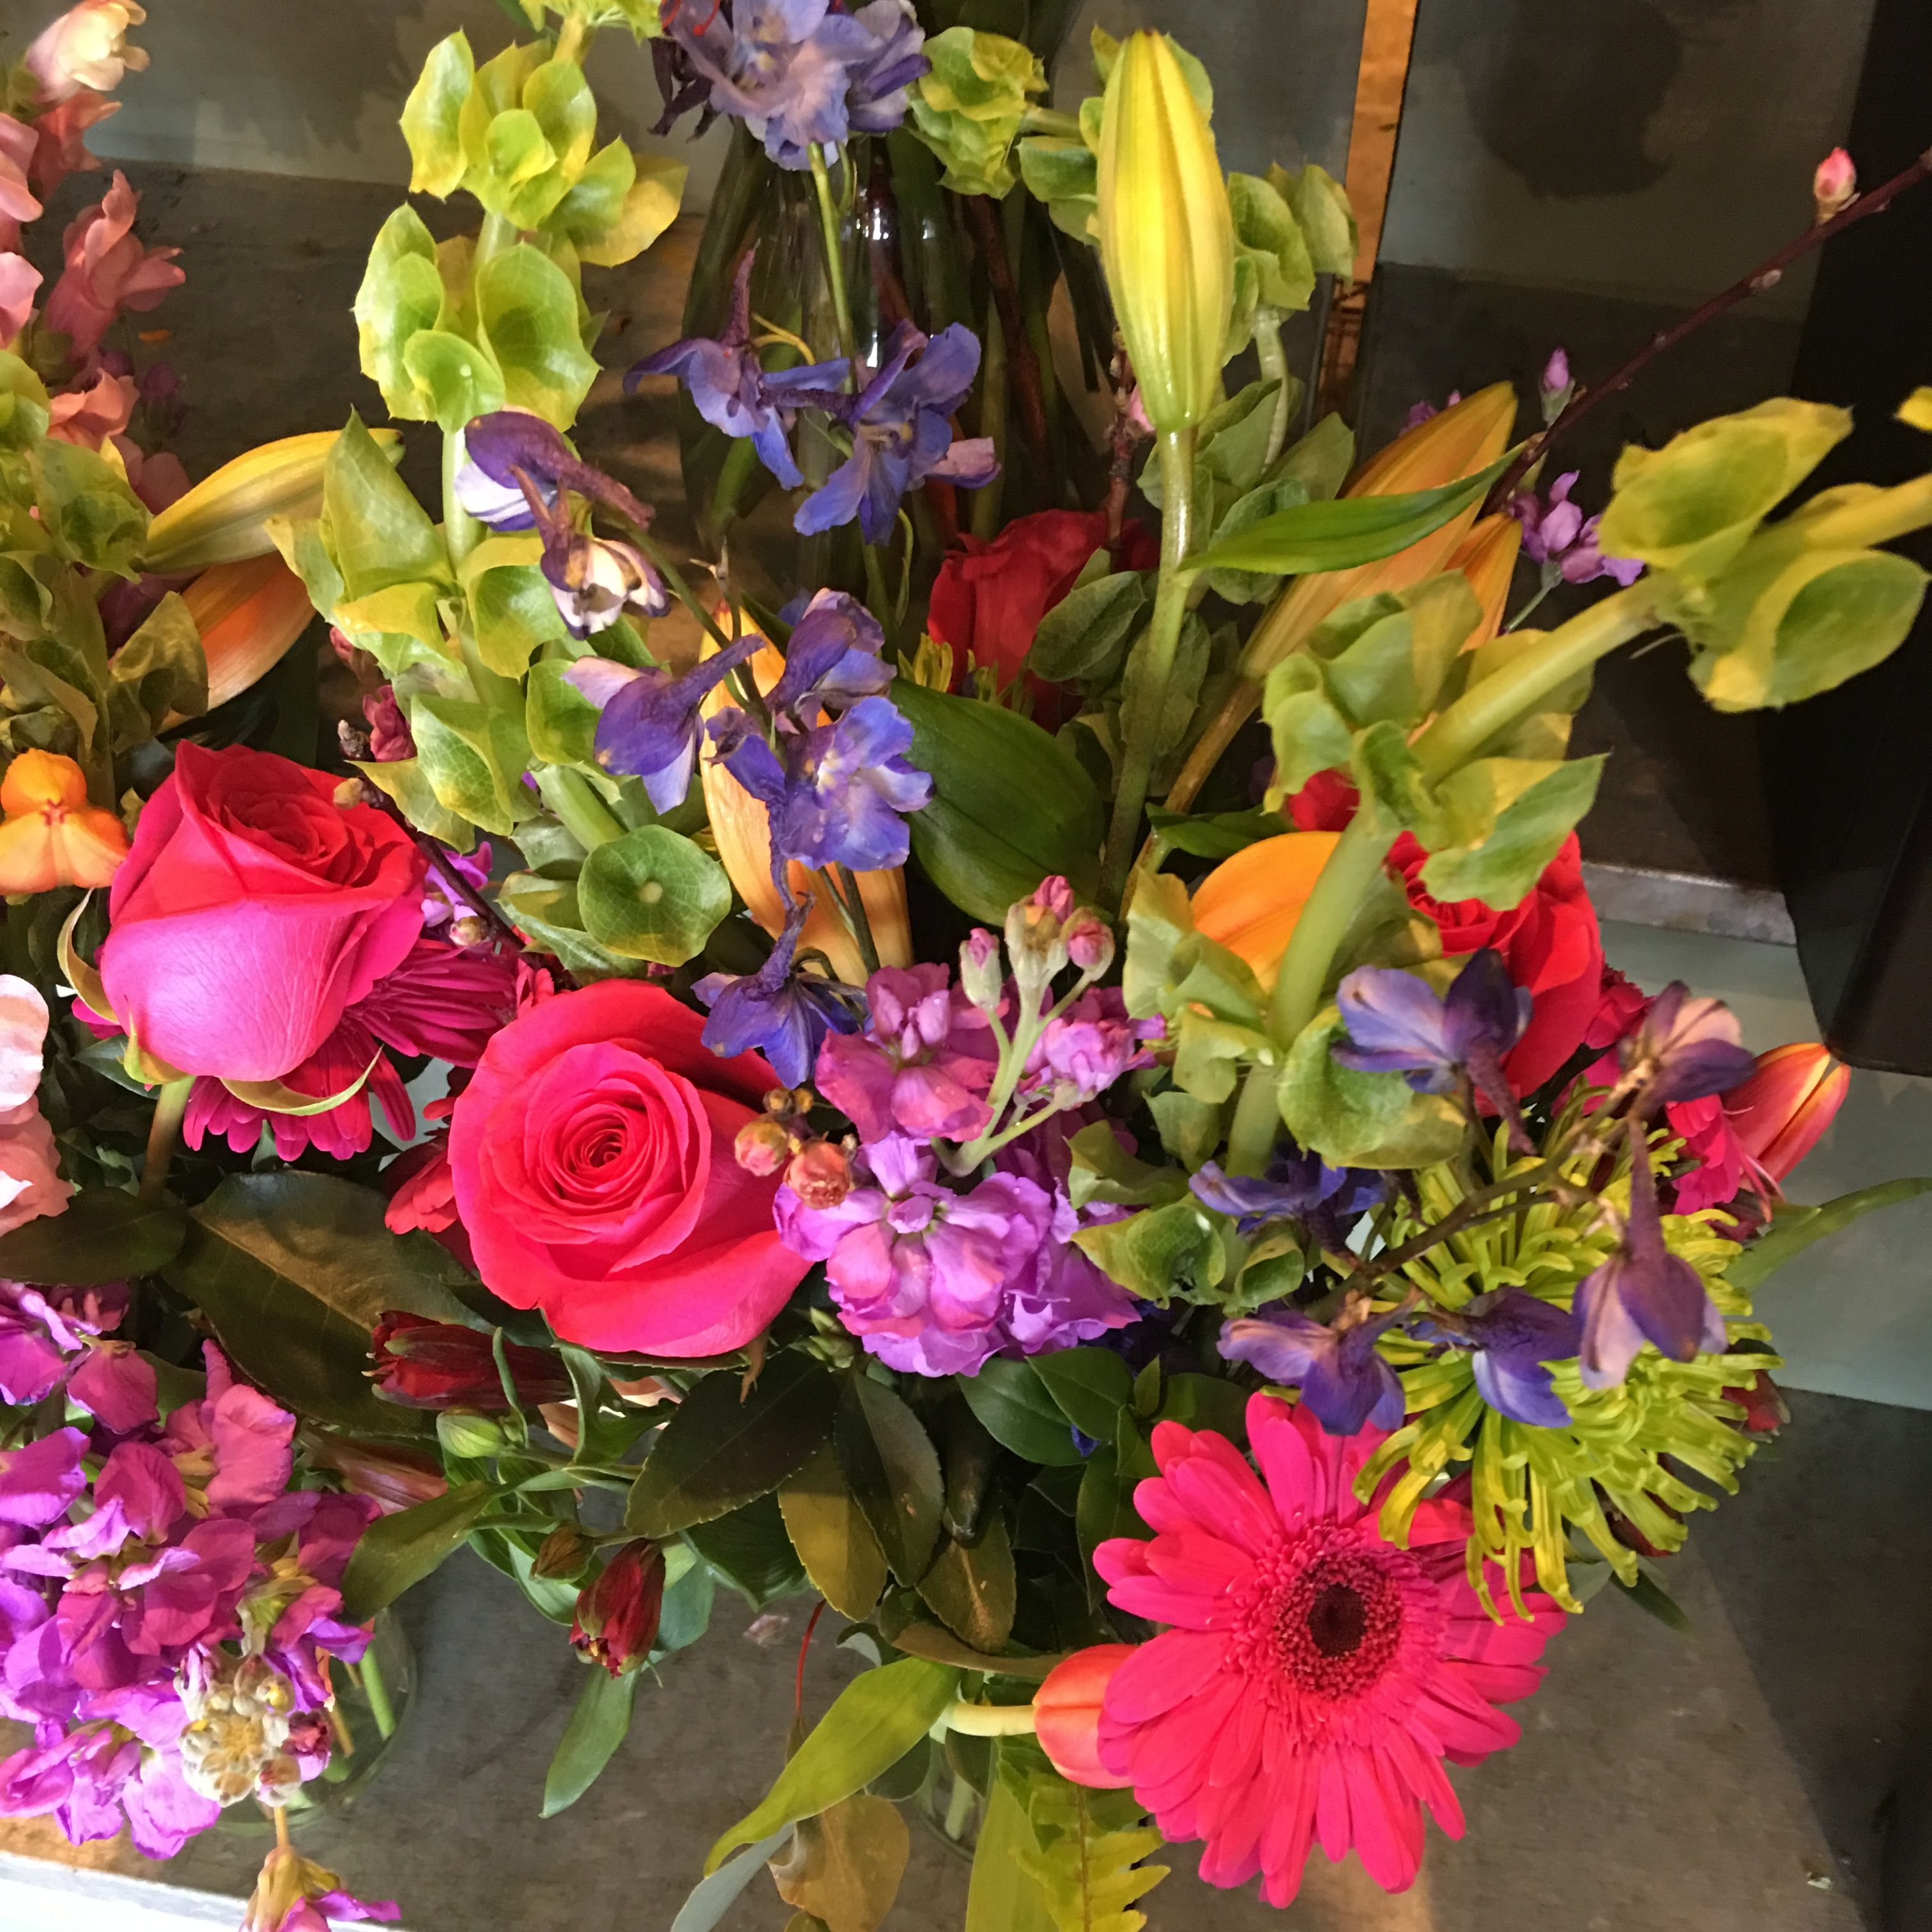 We Love The Spring Colors In This Arrangement Of Pink Roses Pink